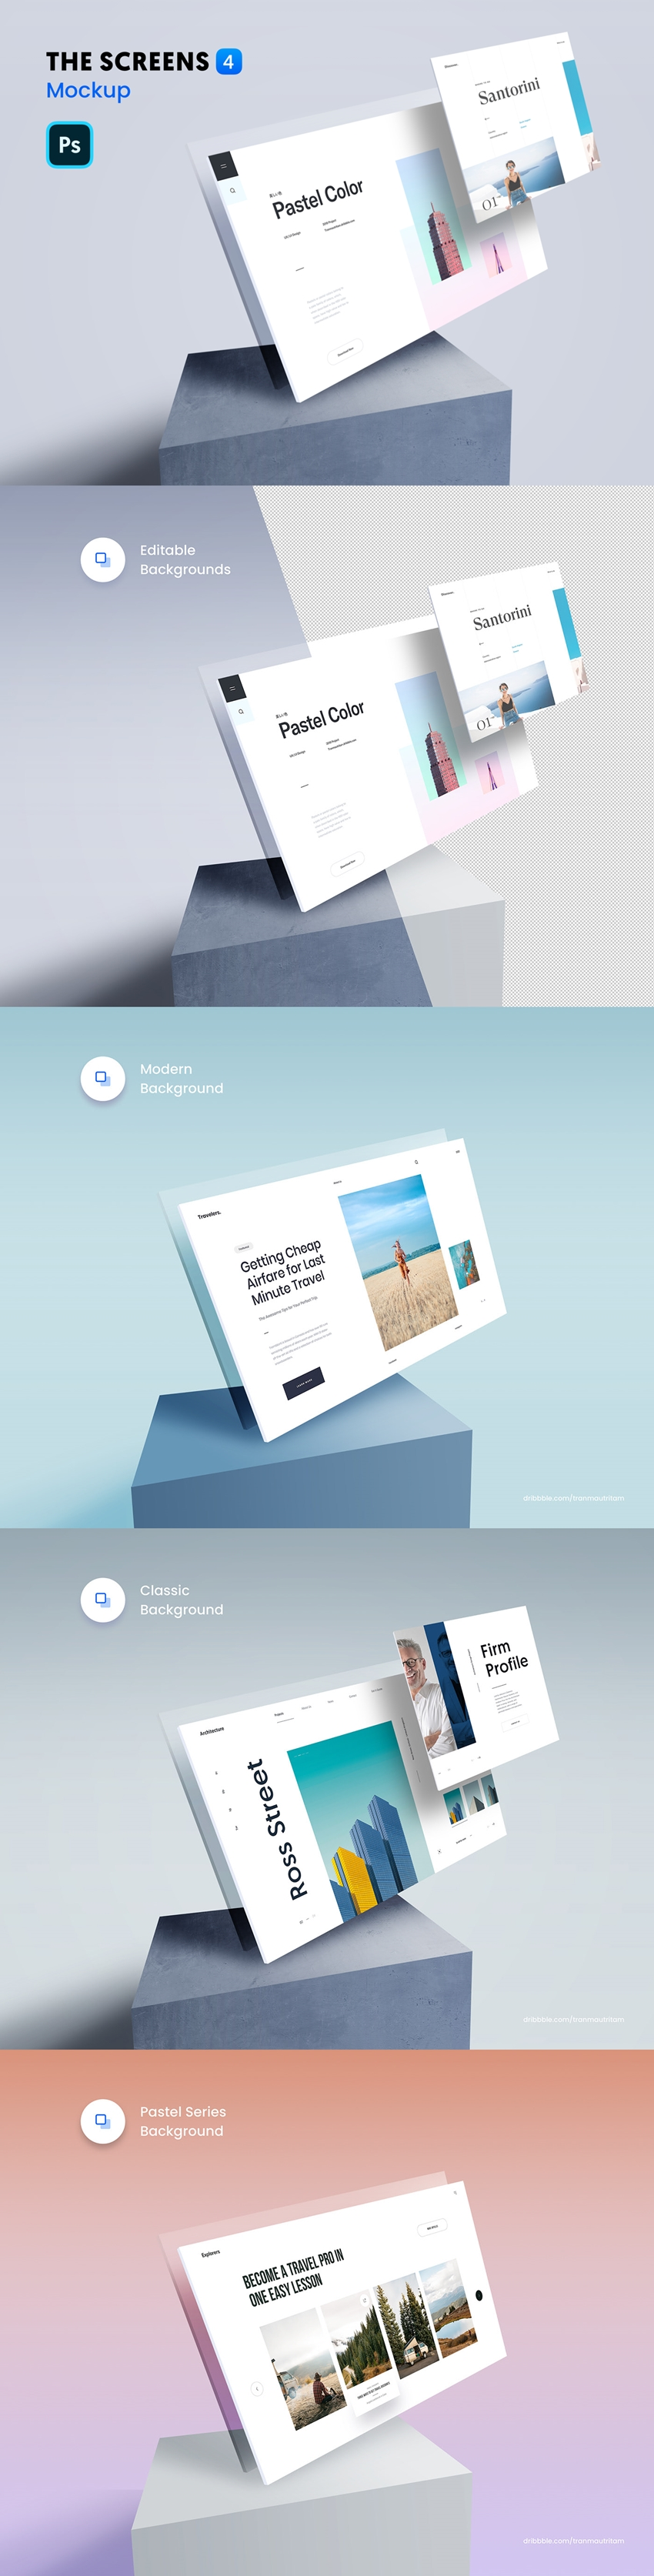 The Screens 4 PSD Mockup